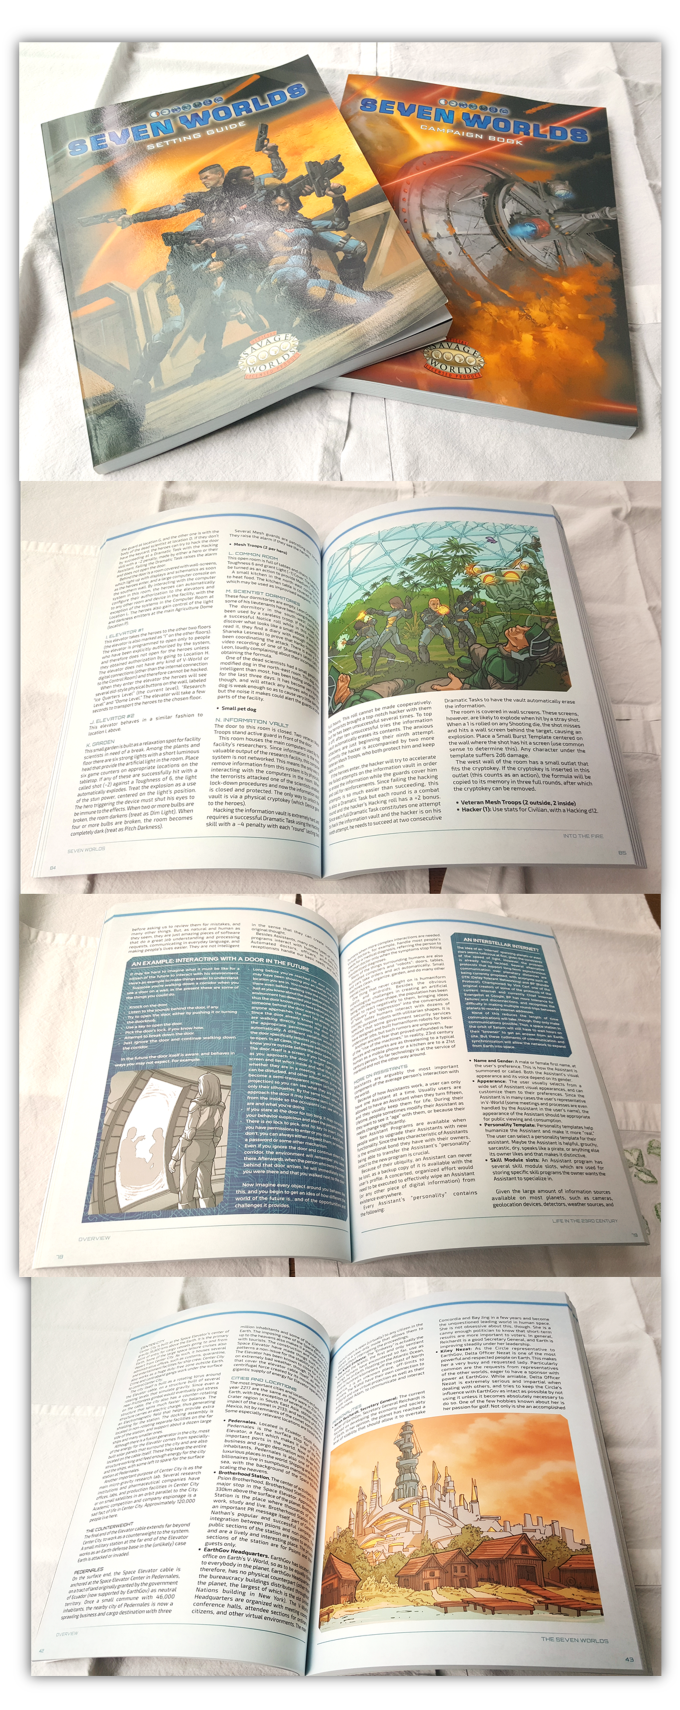 The Print-on-demand books are real, and they look awesome! Here you can see some samples, taken on my kitchen table.